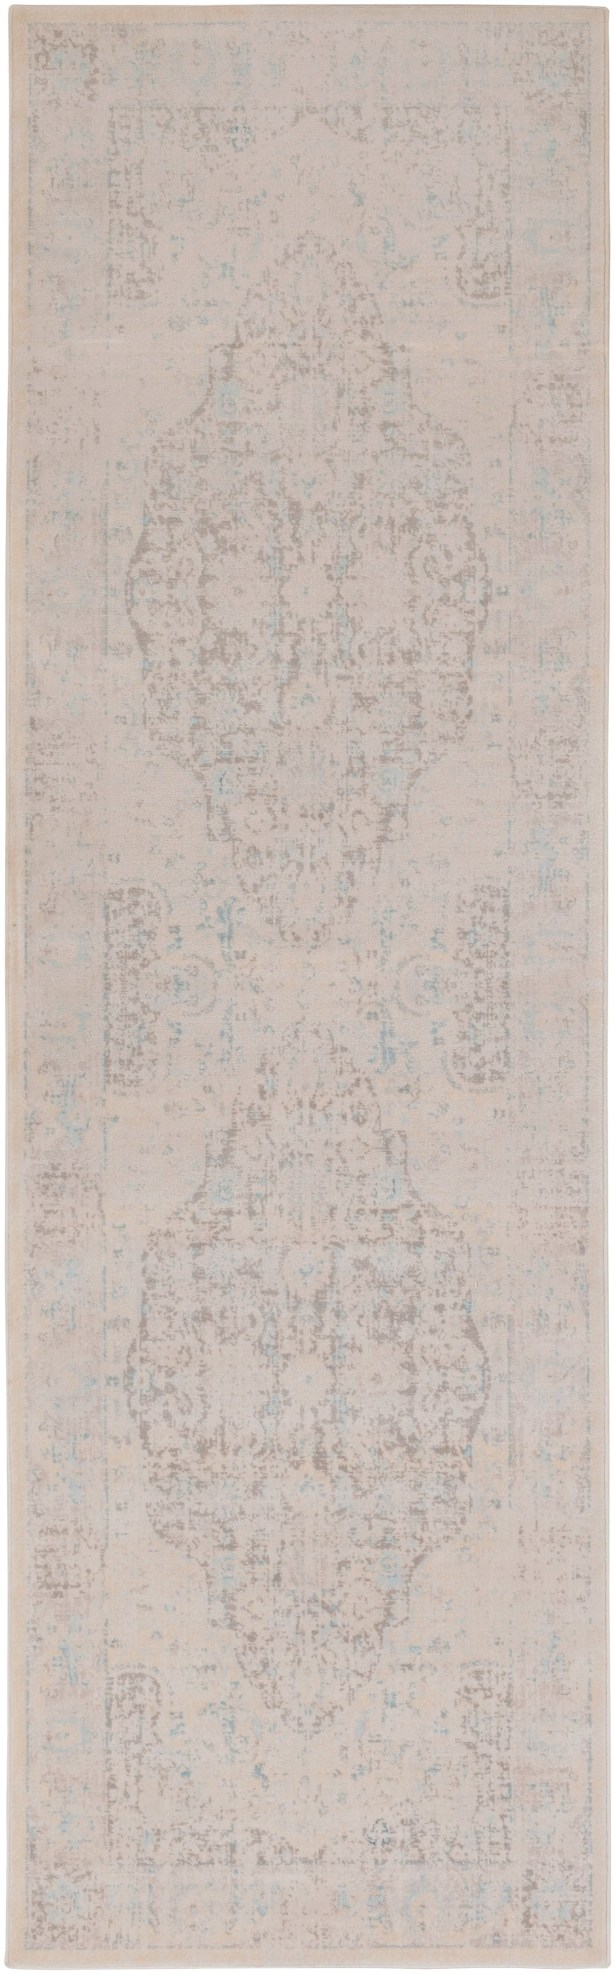 Orman Beige/Taupe Area Rug Rug Size: Rectangle 5'3